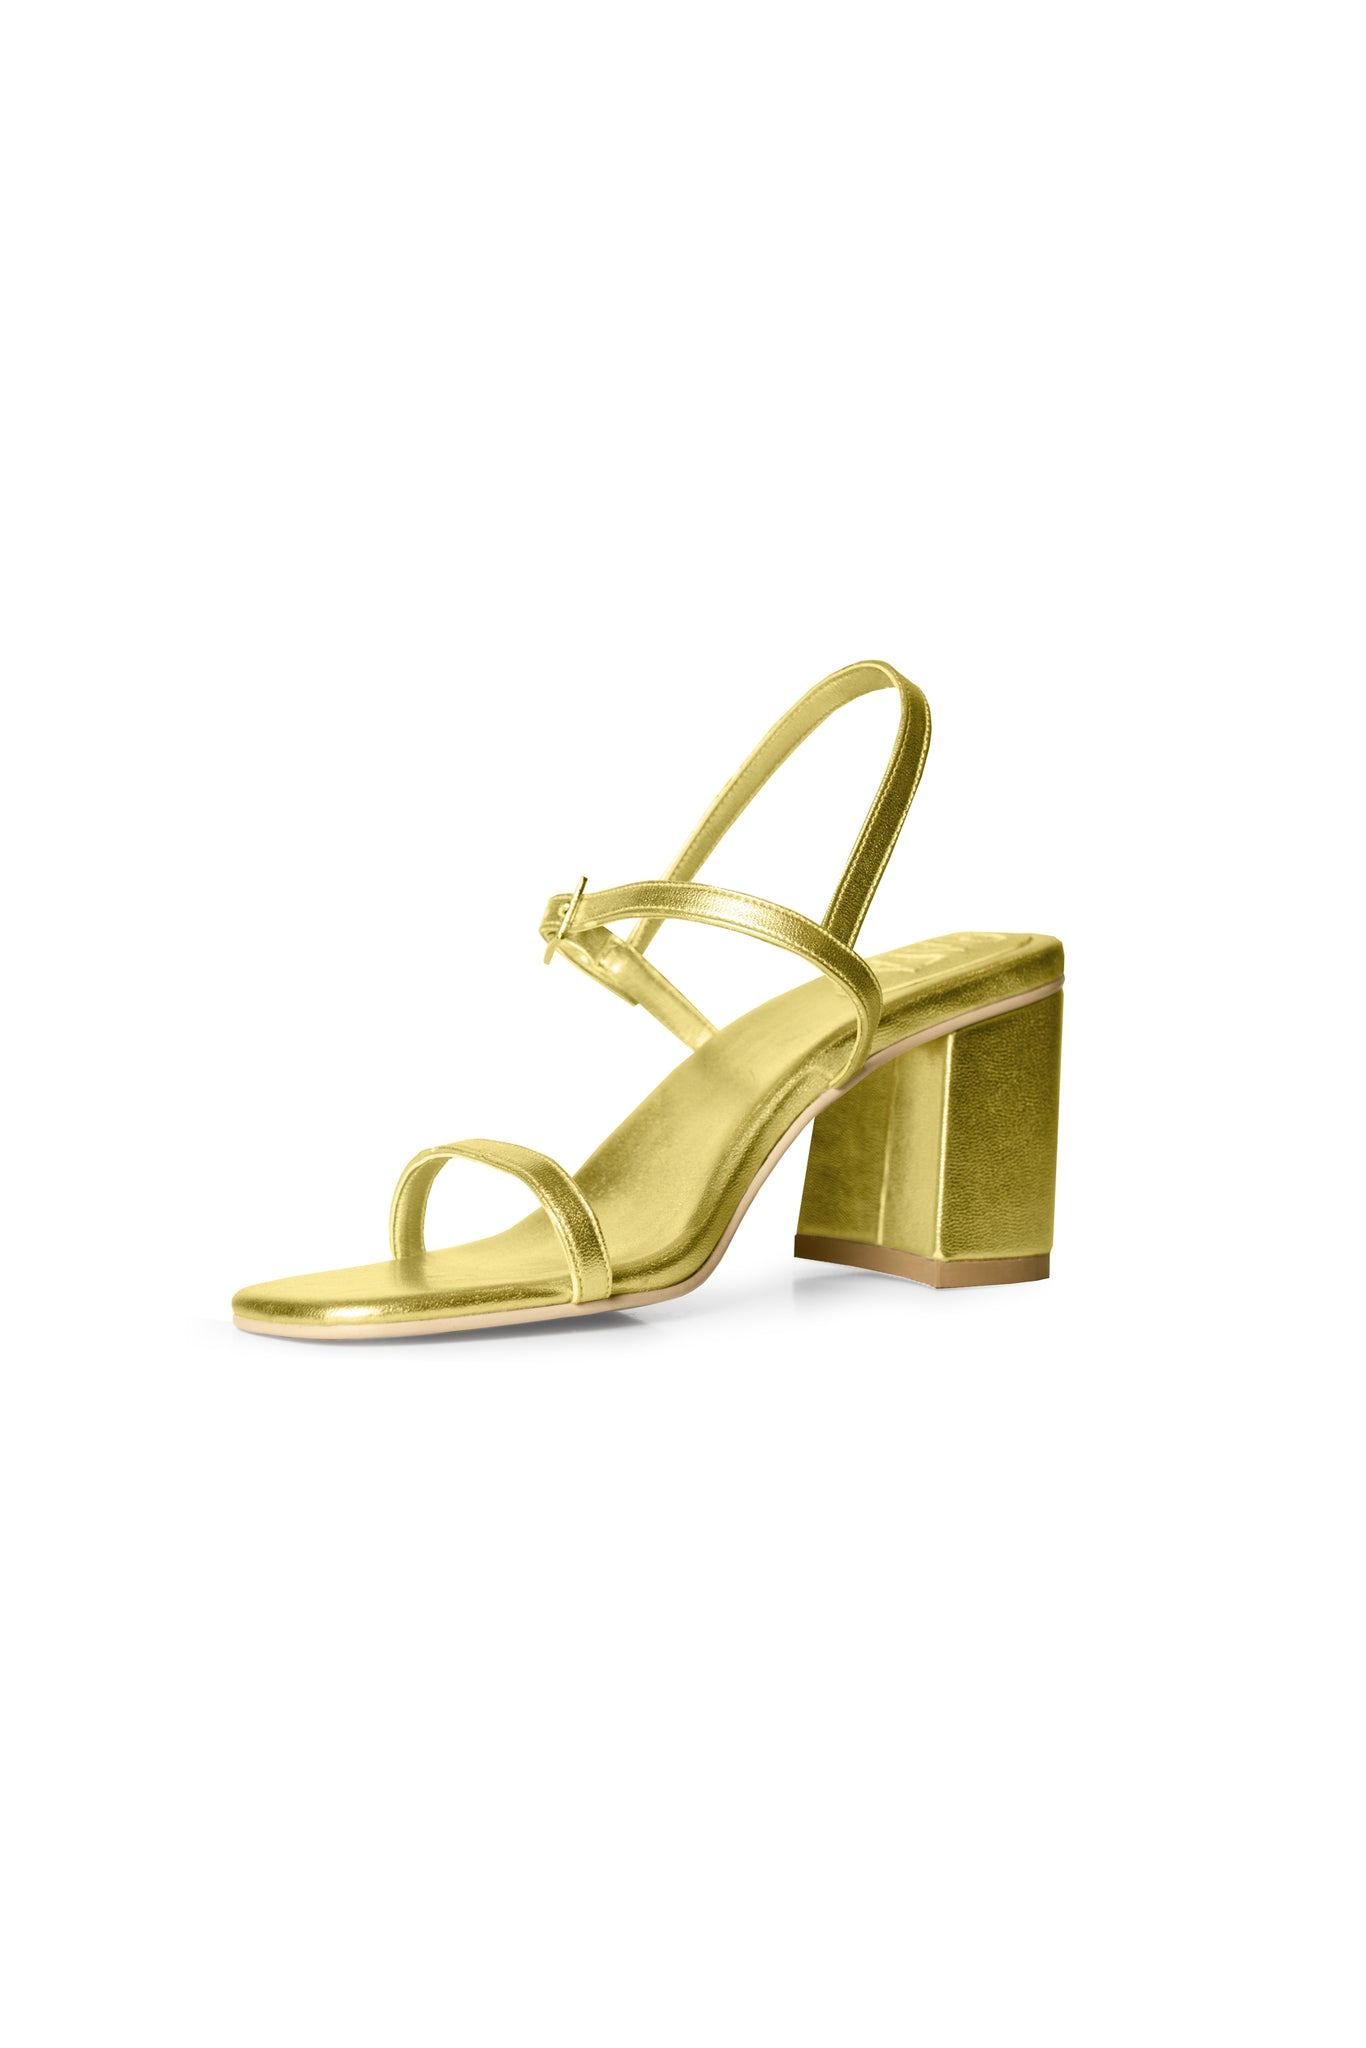 The Simple Sandal | Ore